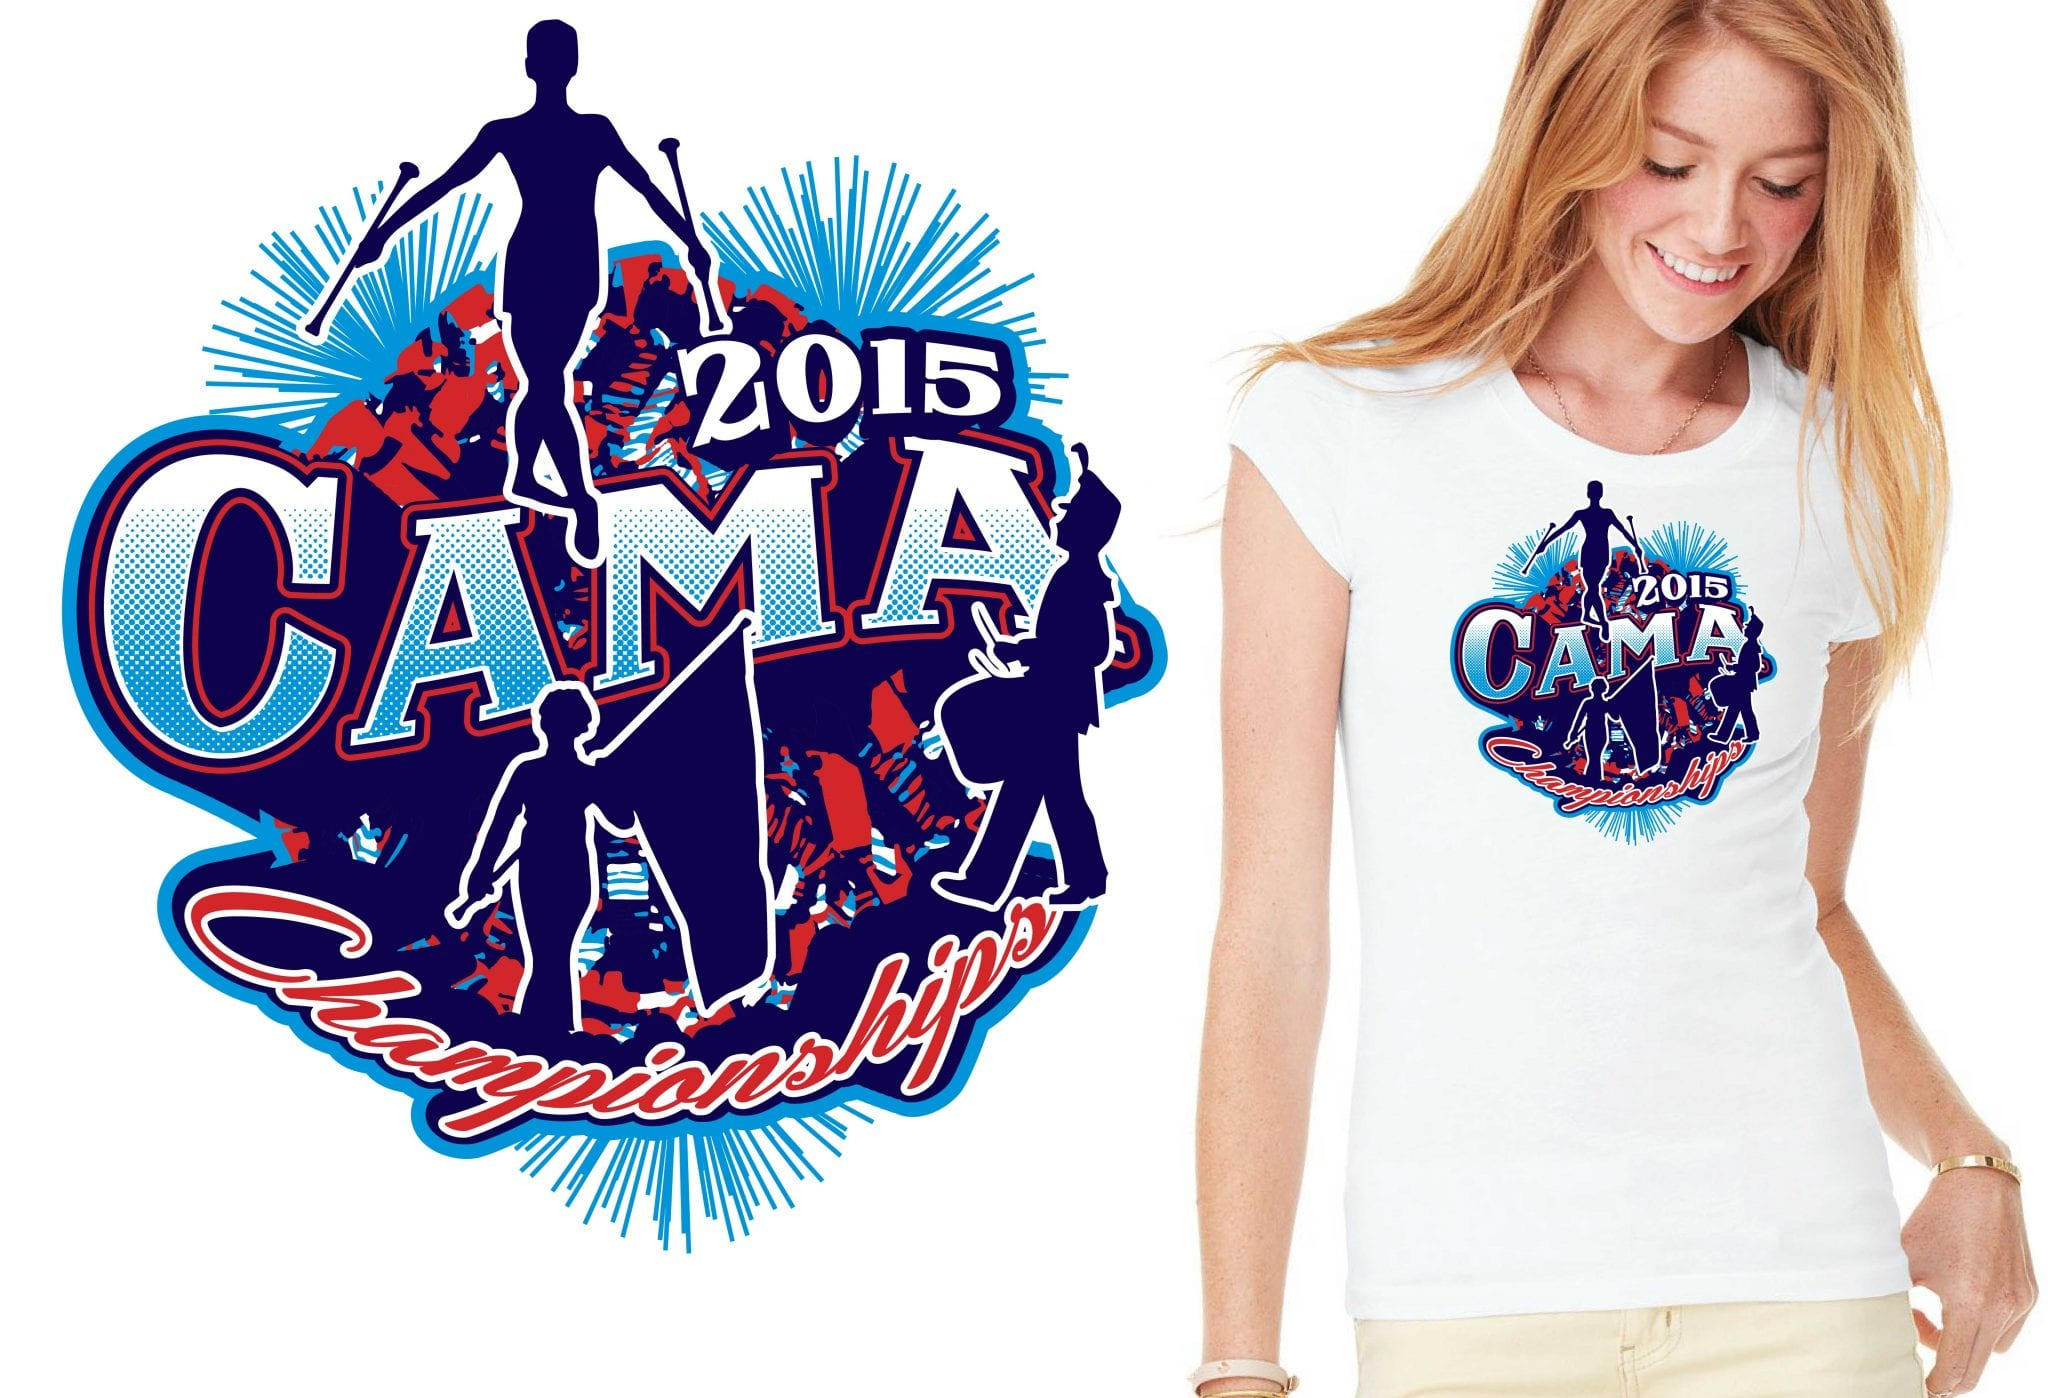 2015 CAMA Championships cool band tshirt design